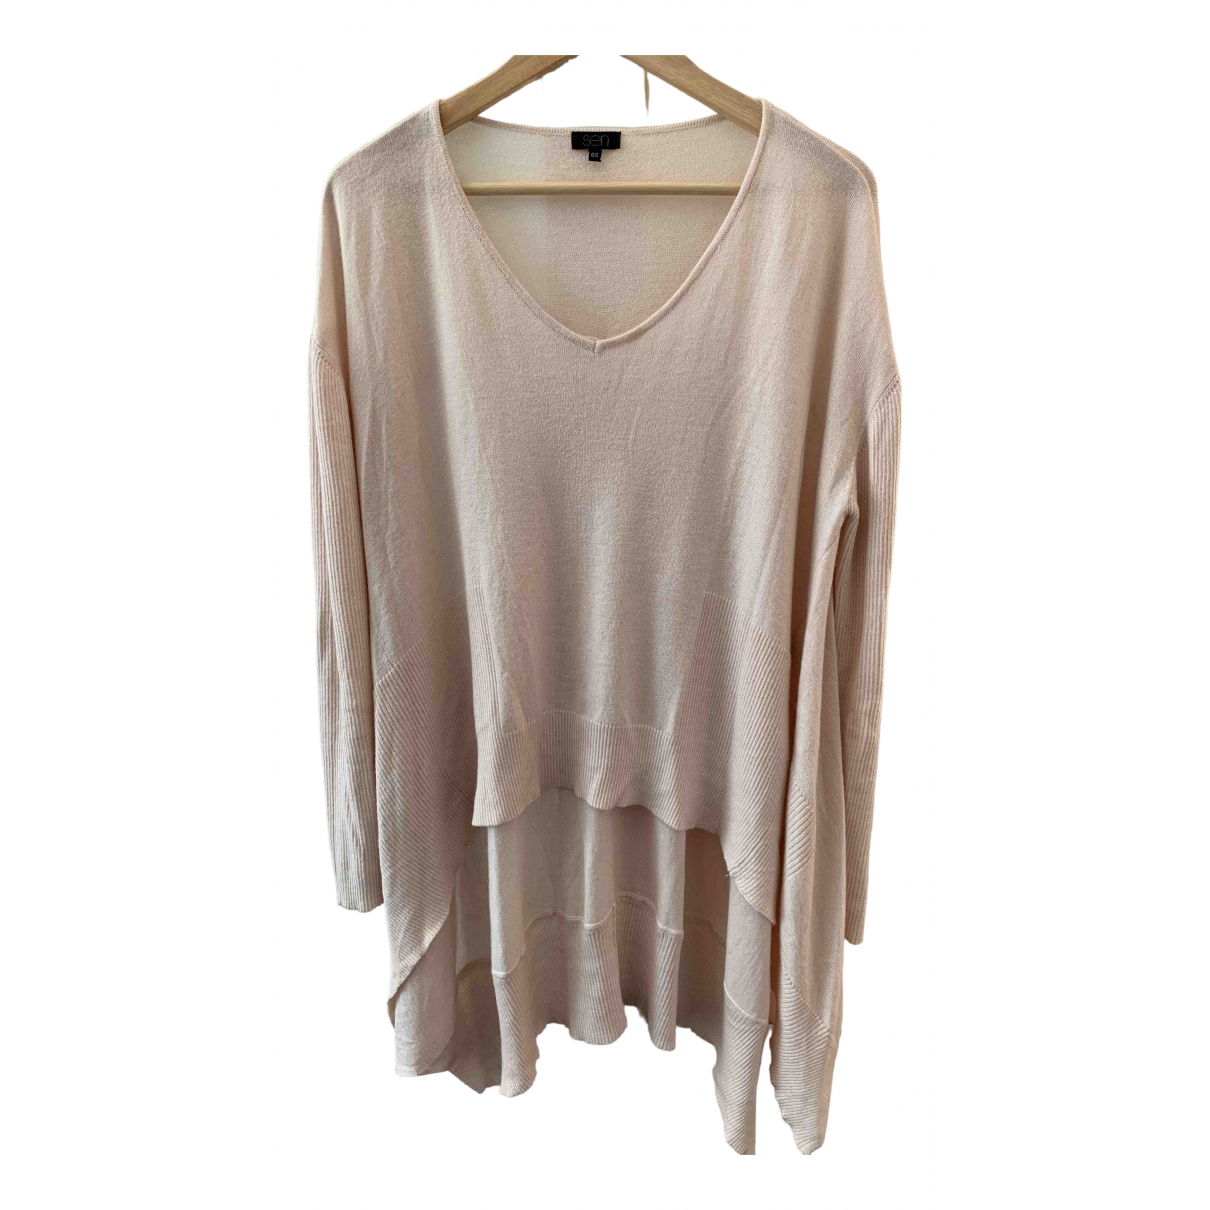 Non Signé / Unsigned Oversize Pink Cashmere Knitwear for Women One Size 0-5